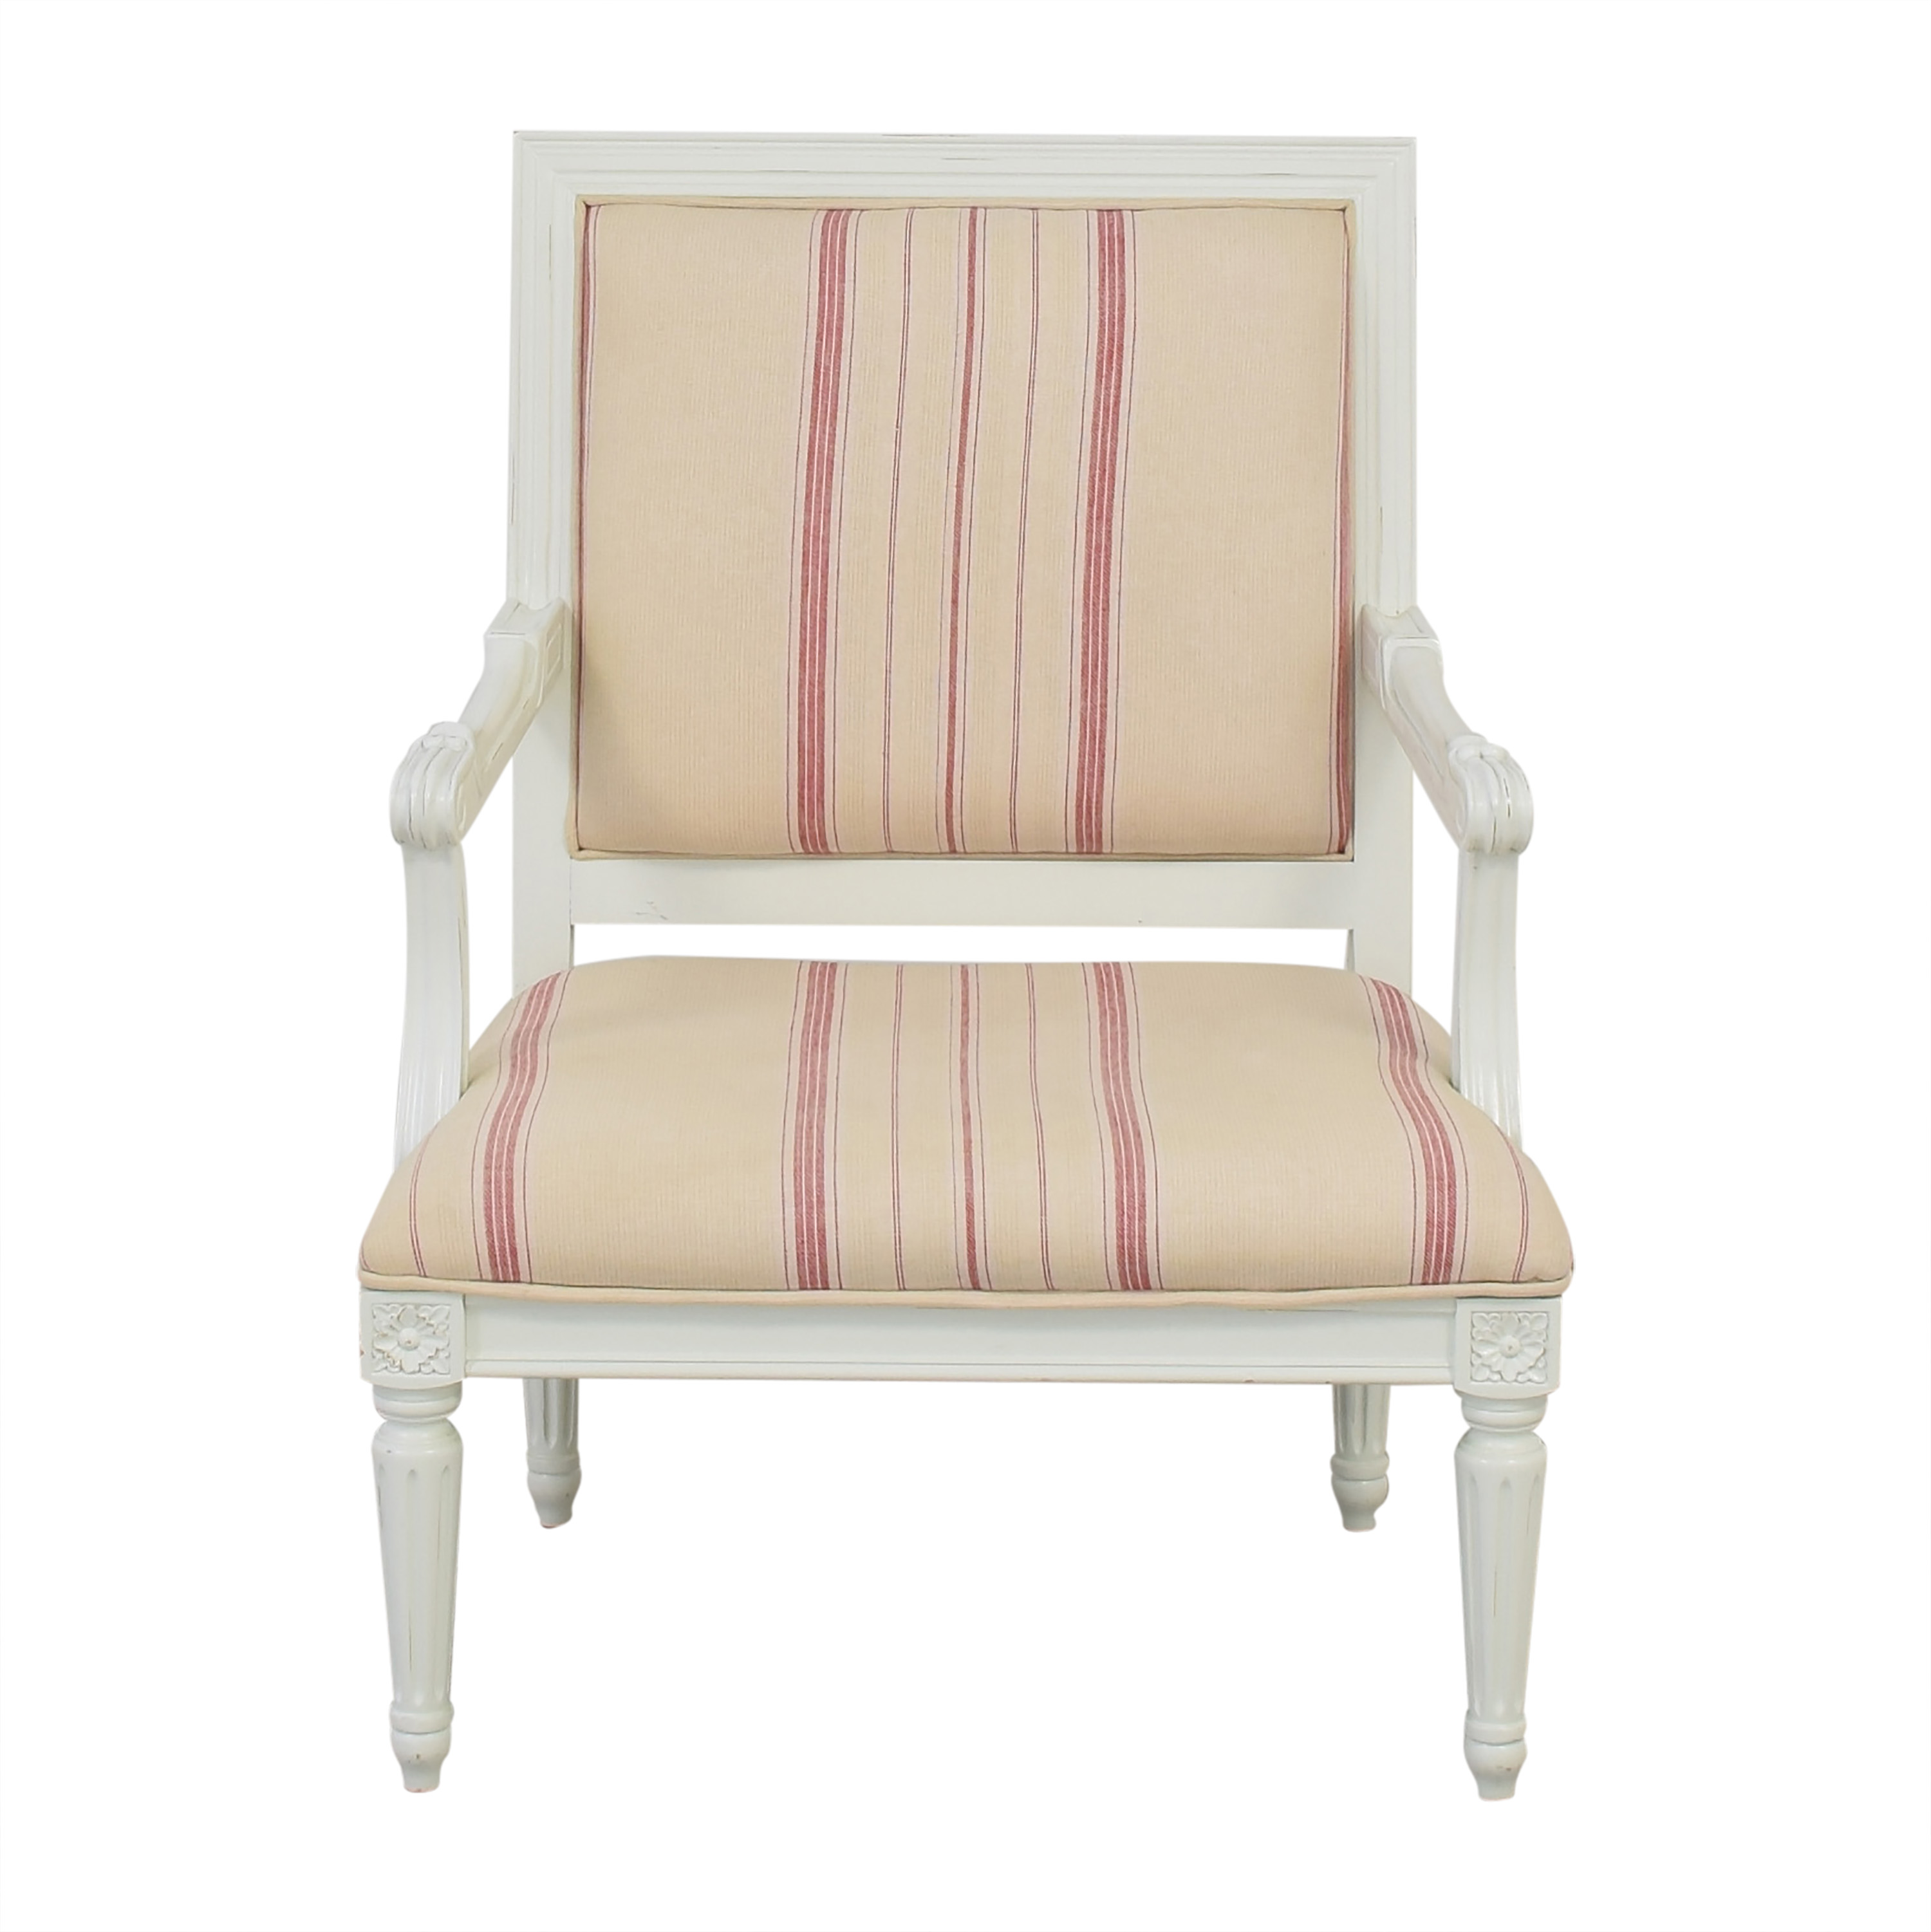 Pottery Barn Pottery Barn Upholstered Accent Chair Chairs